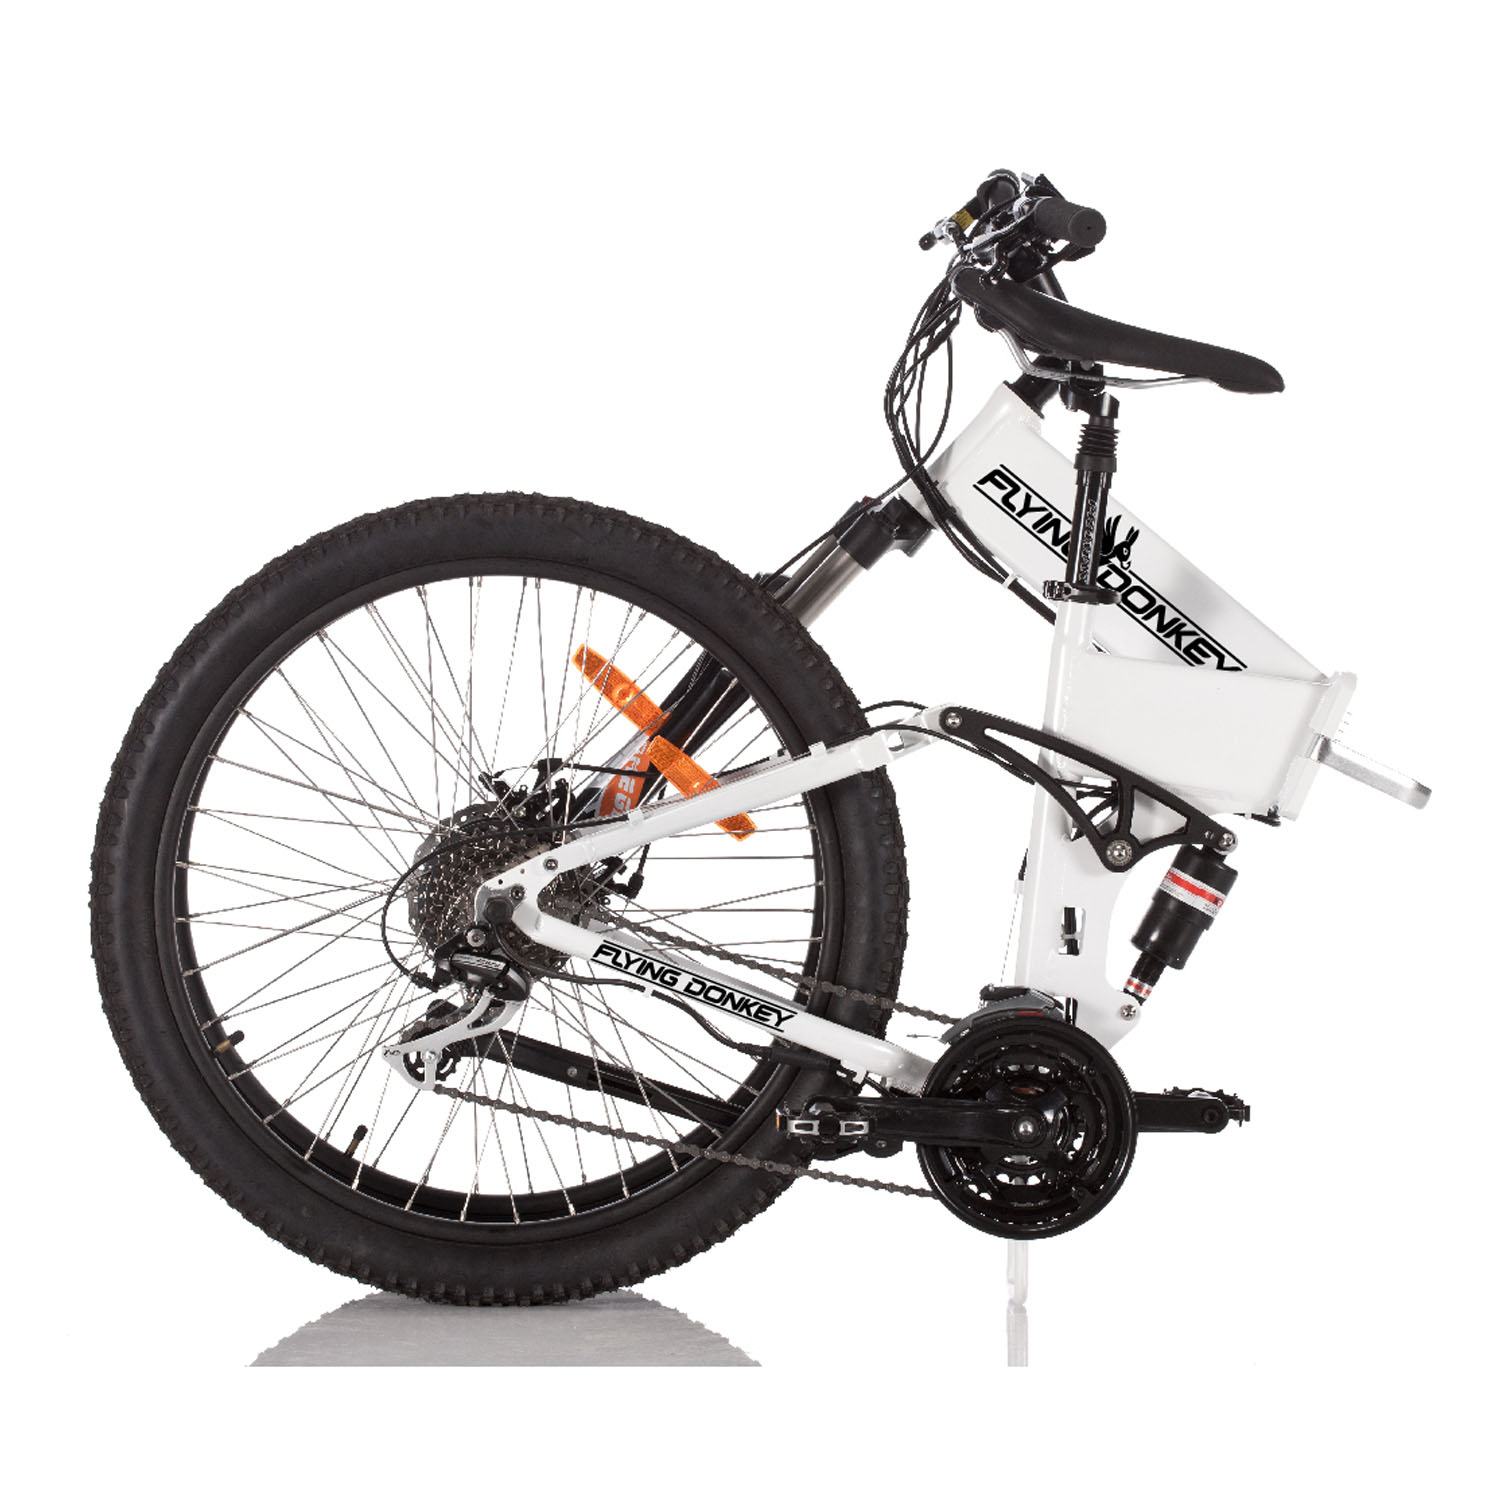 flying donkey pedelec mountainbike e bike full suspension. Black Bedroom Furniture Sets. Home Design Ideas